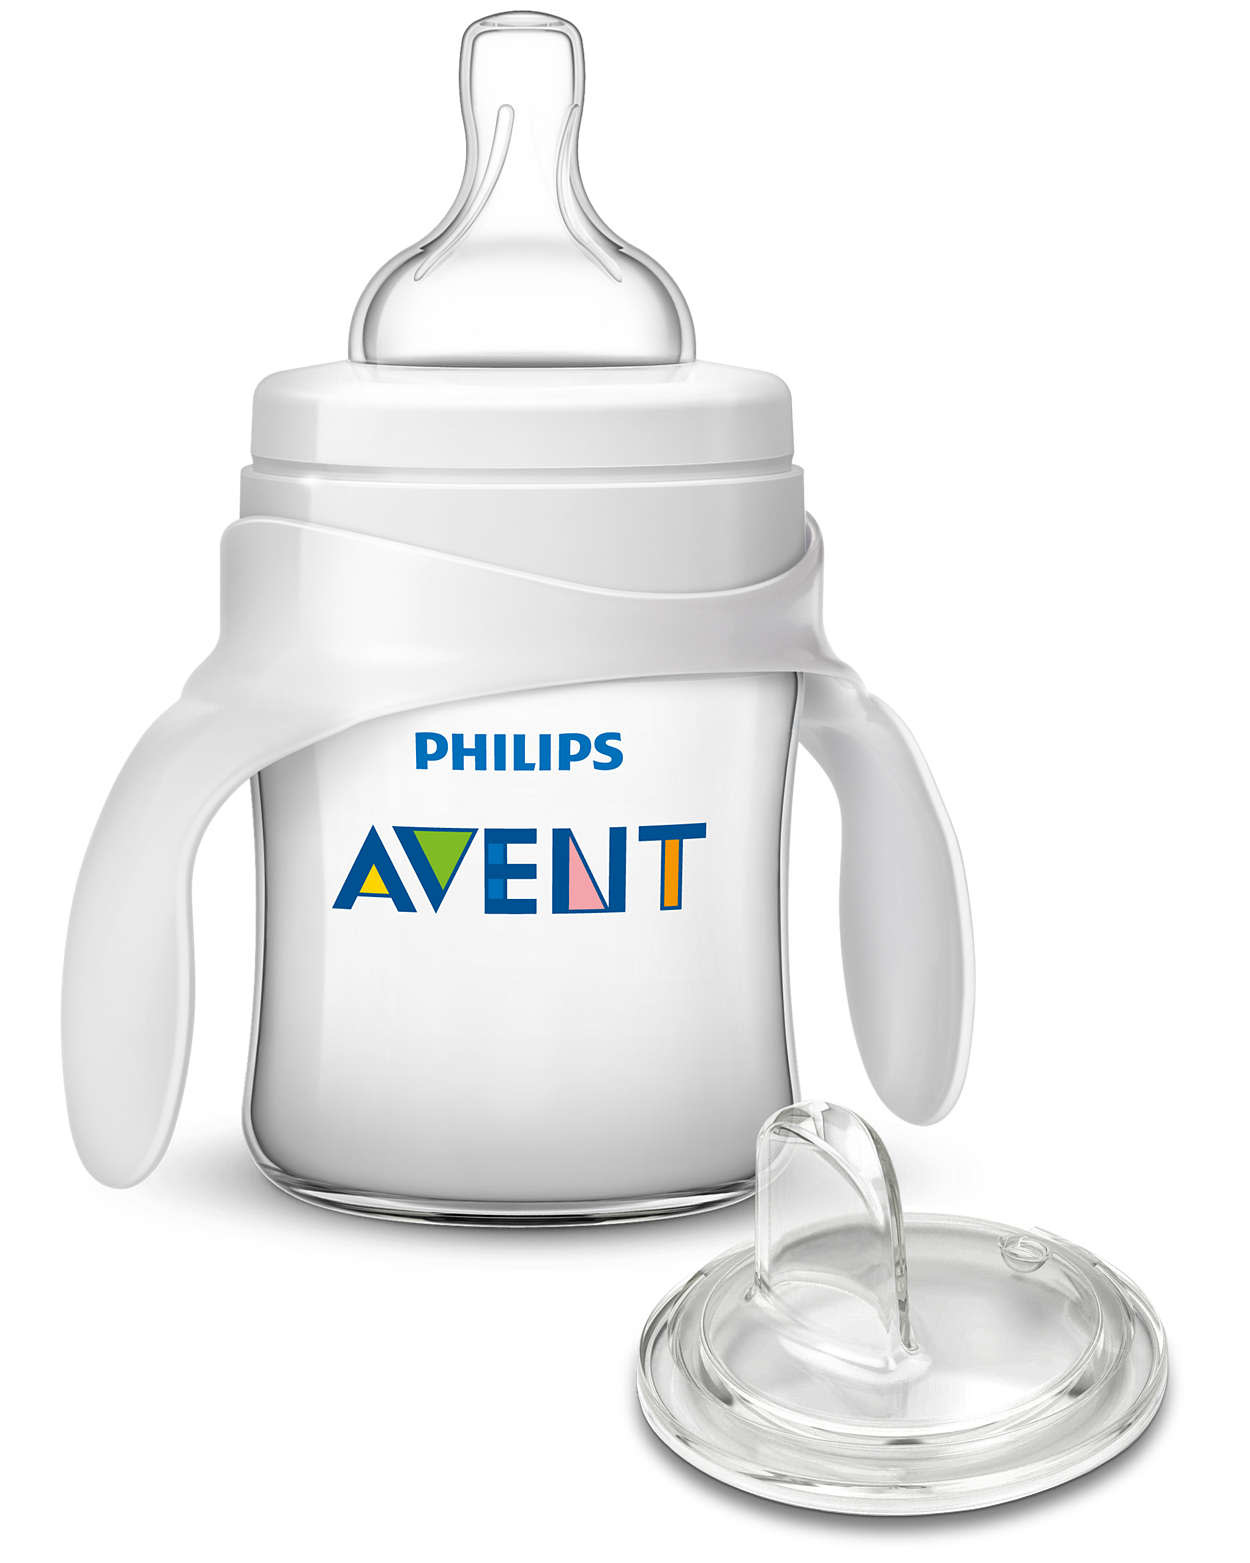 Avent Philips AVENT My First Transition Cup